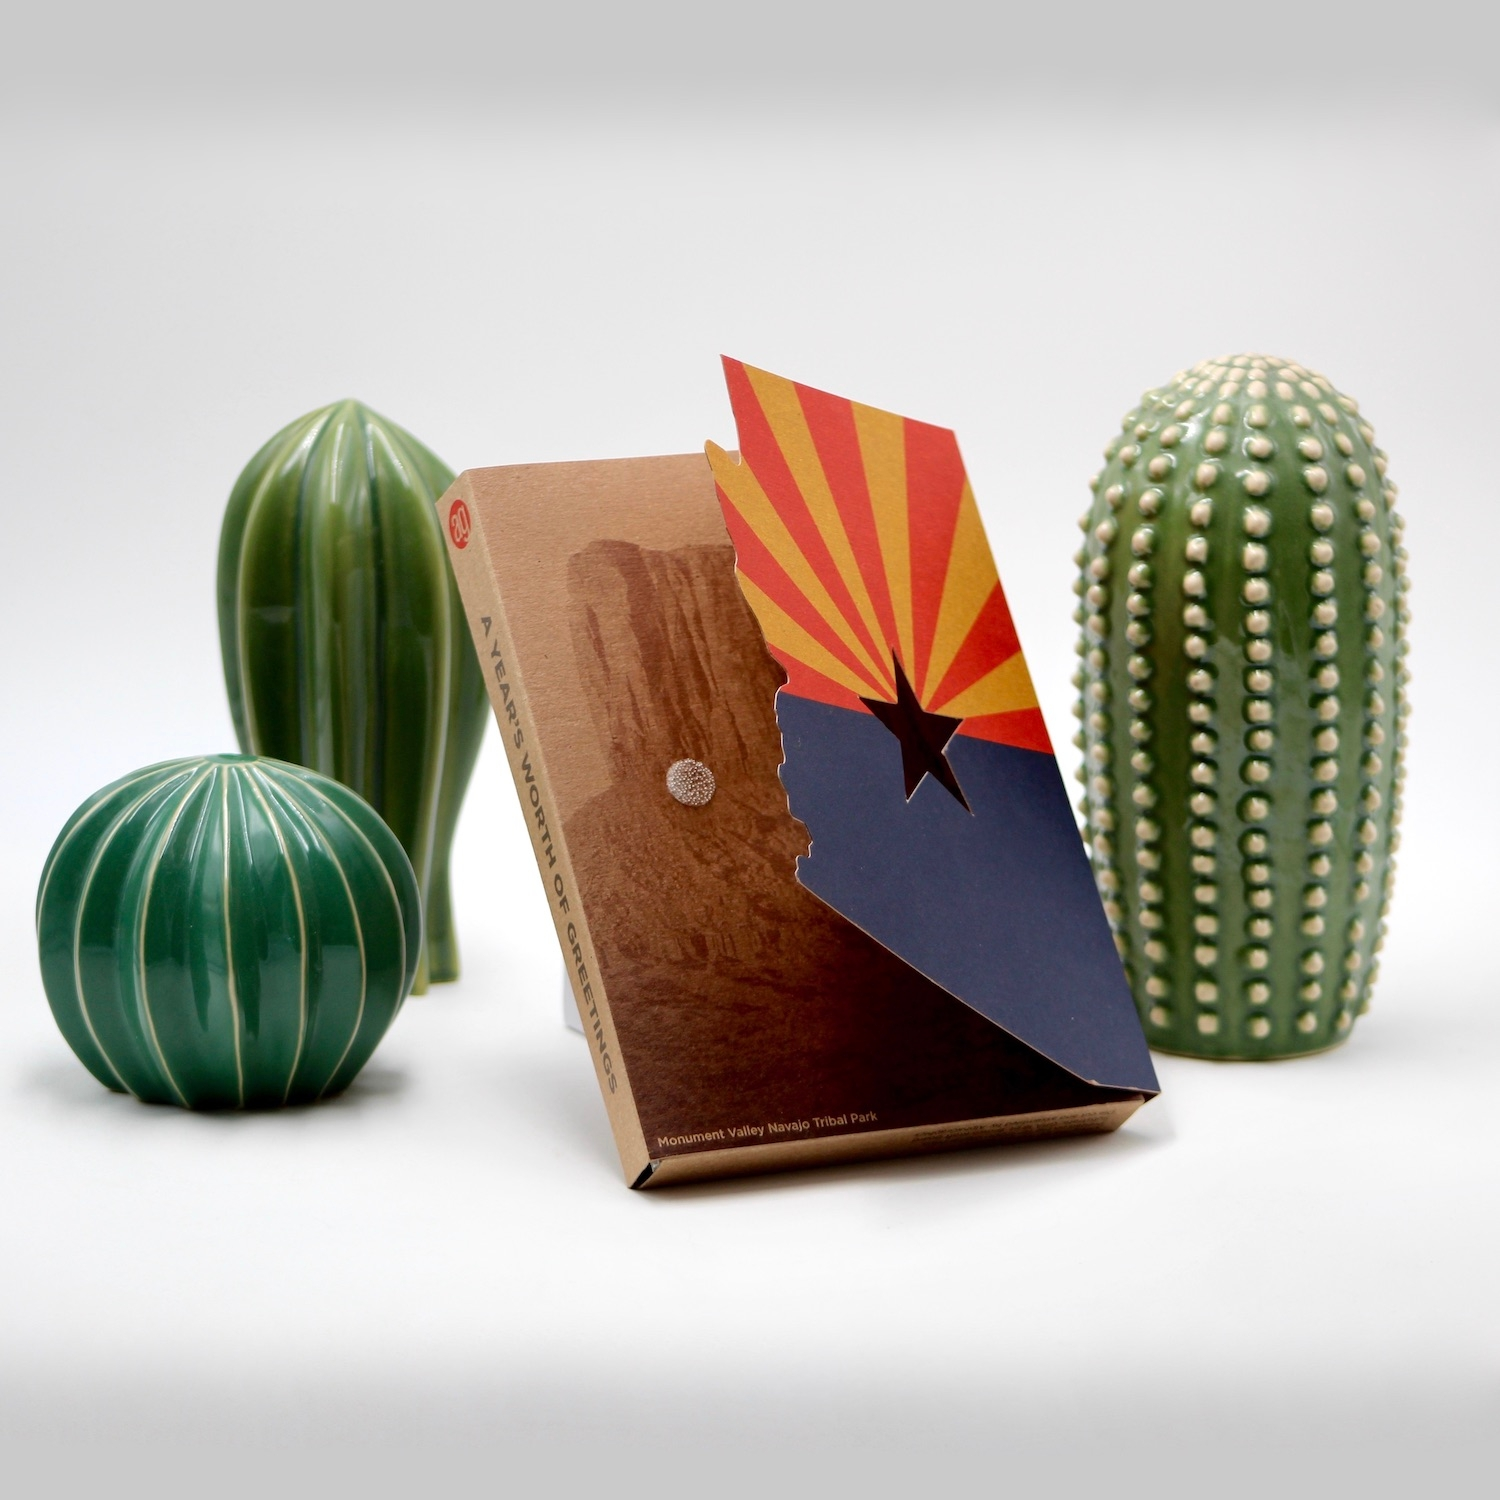 Cactus and book